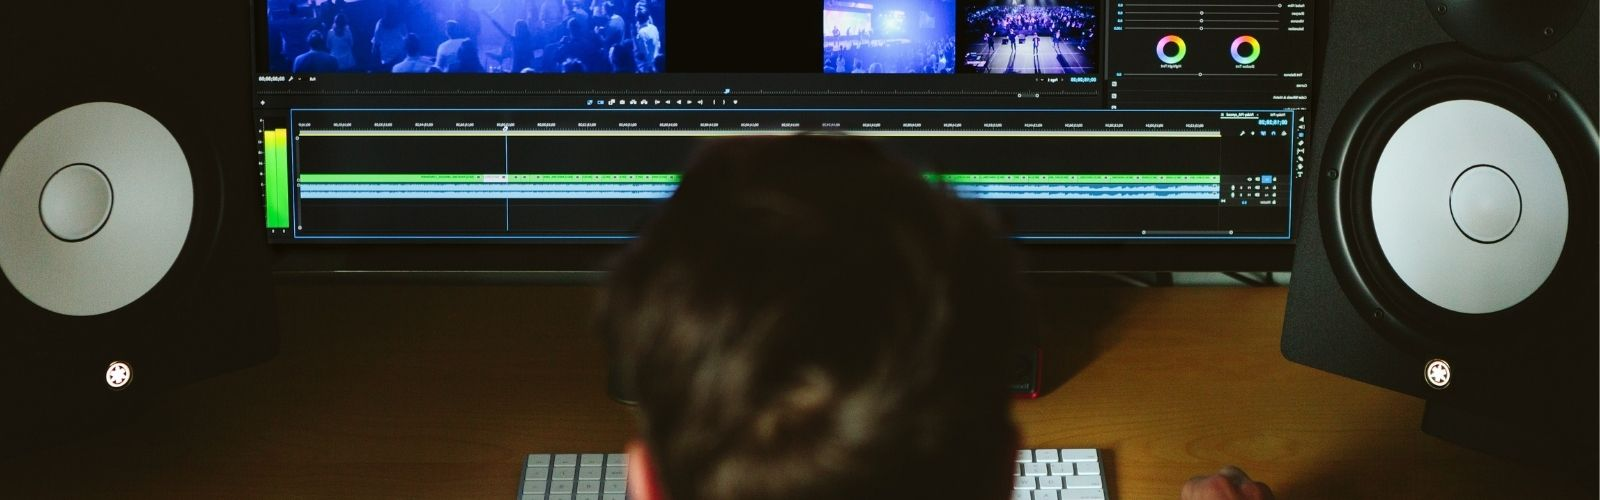 video editing software cover